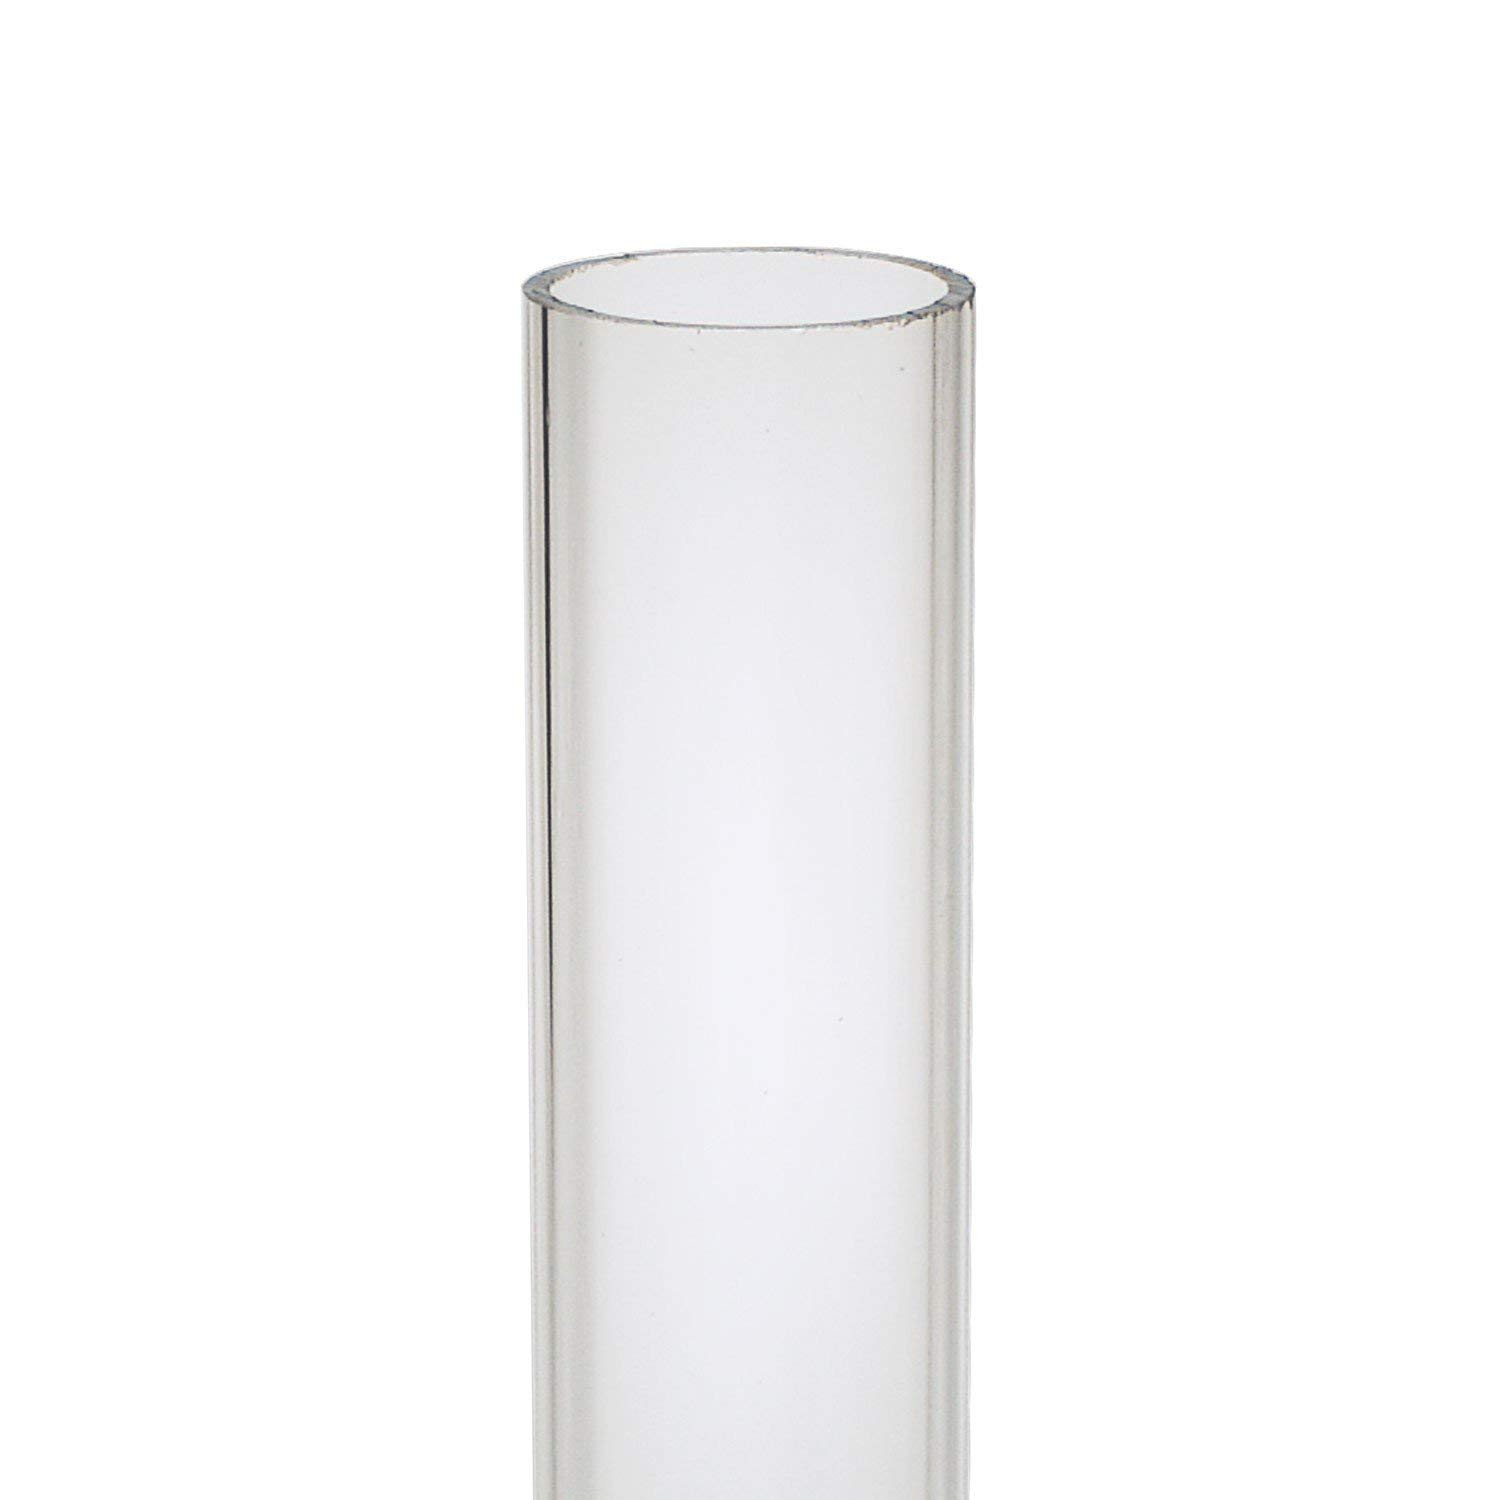 clear acrylic cylinder vase of amazon com source one deluxe clear acrylic tube 2 inches thick 12 for amazon com source one deluxe clear acrylic tube 2 inches thick 12 inch 2 inch wide office products